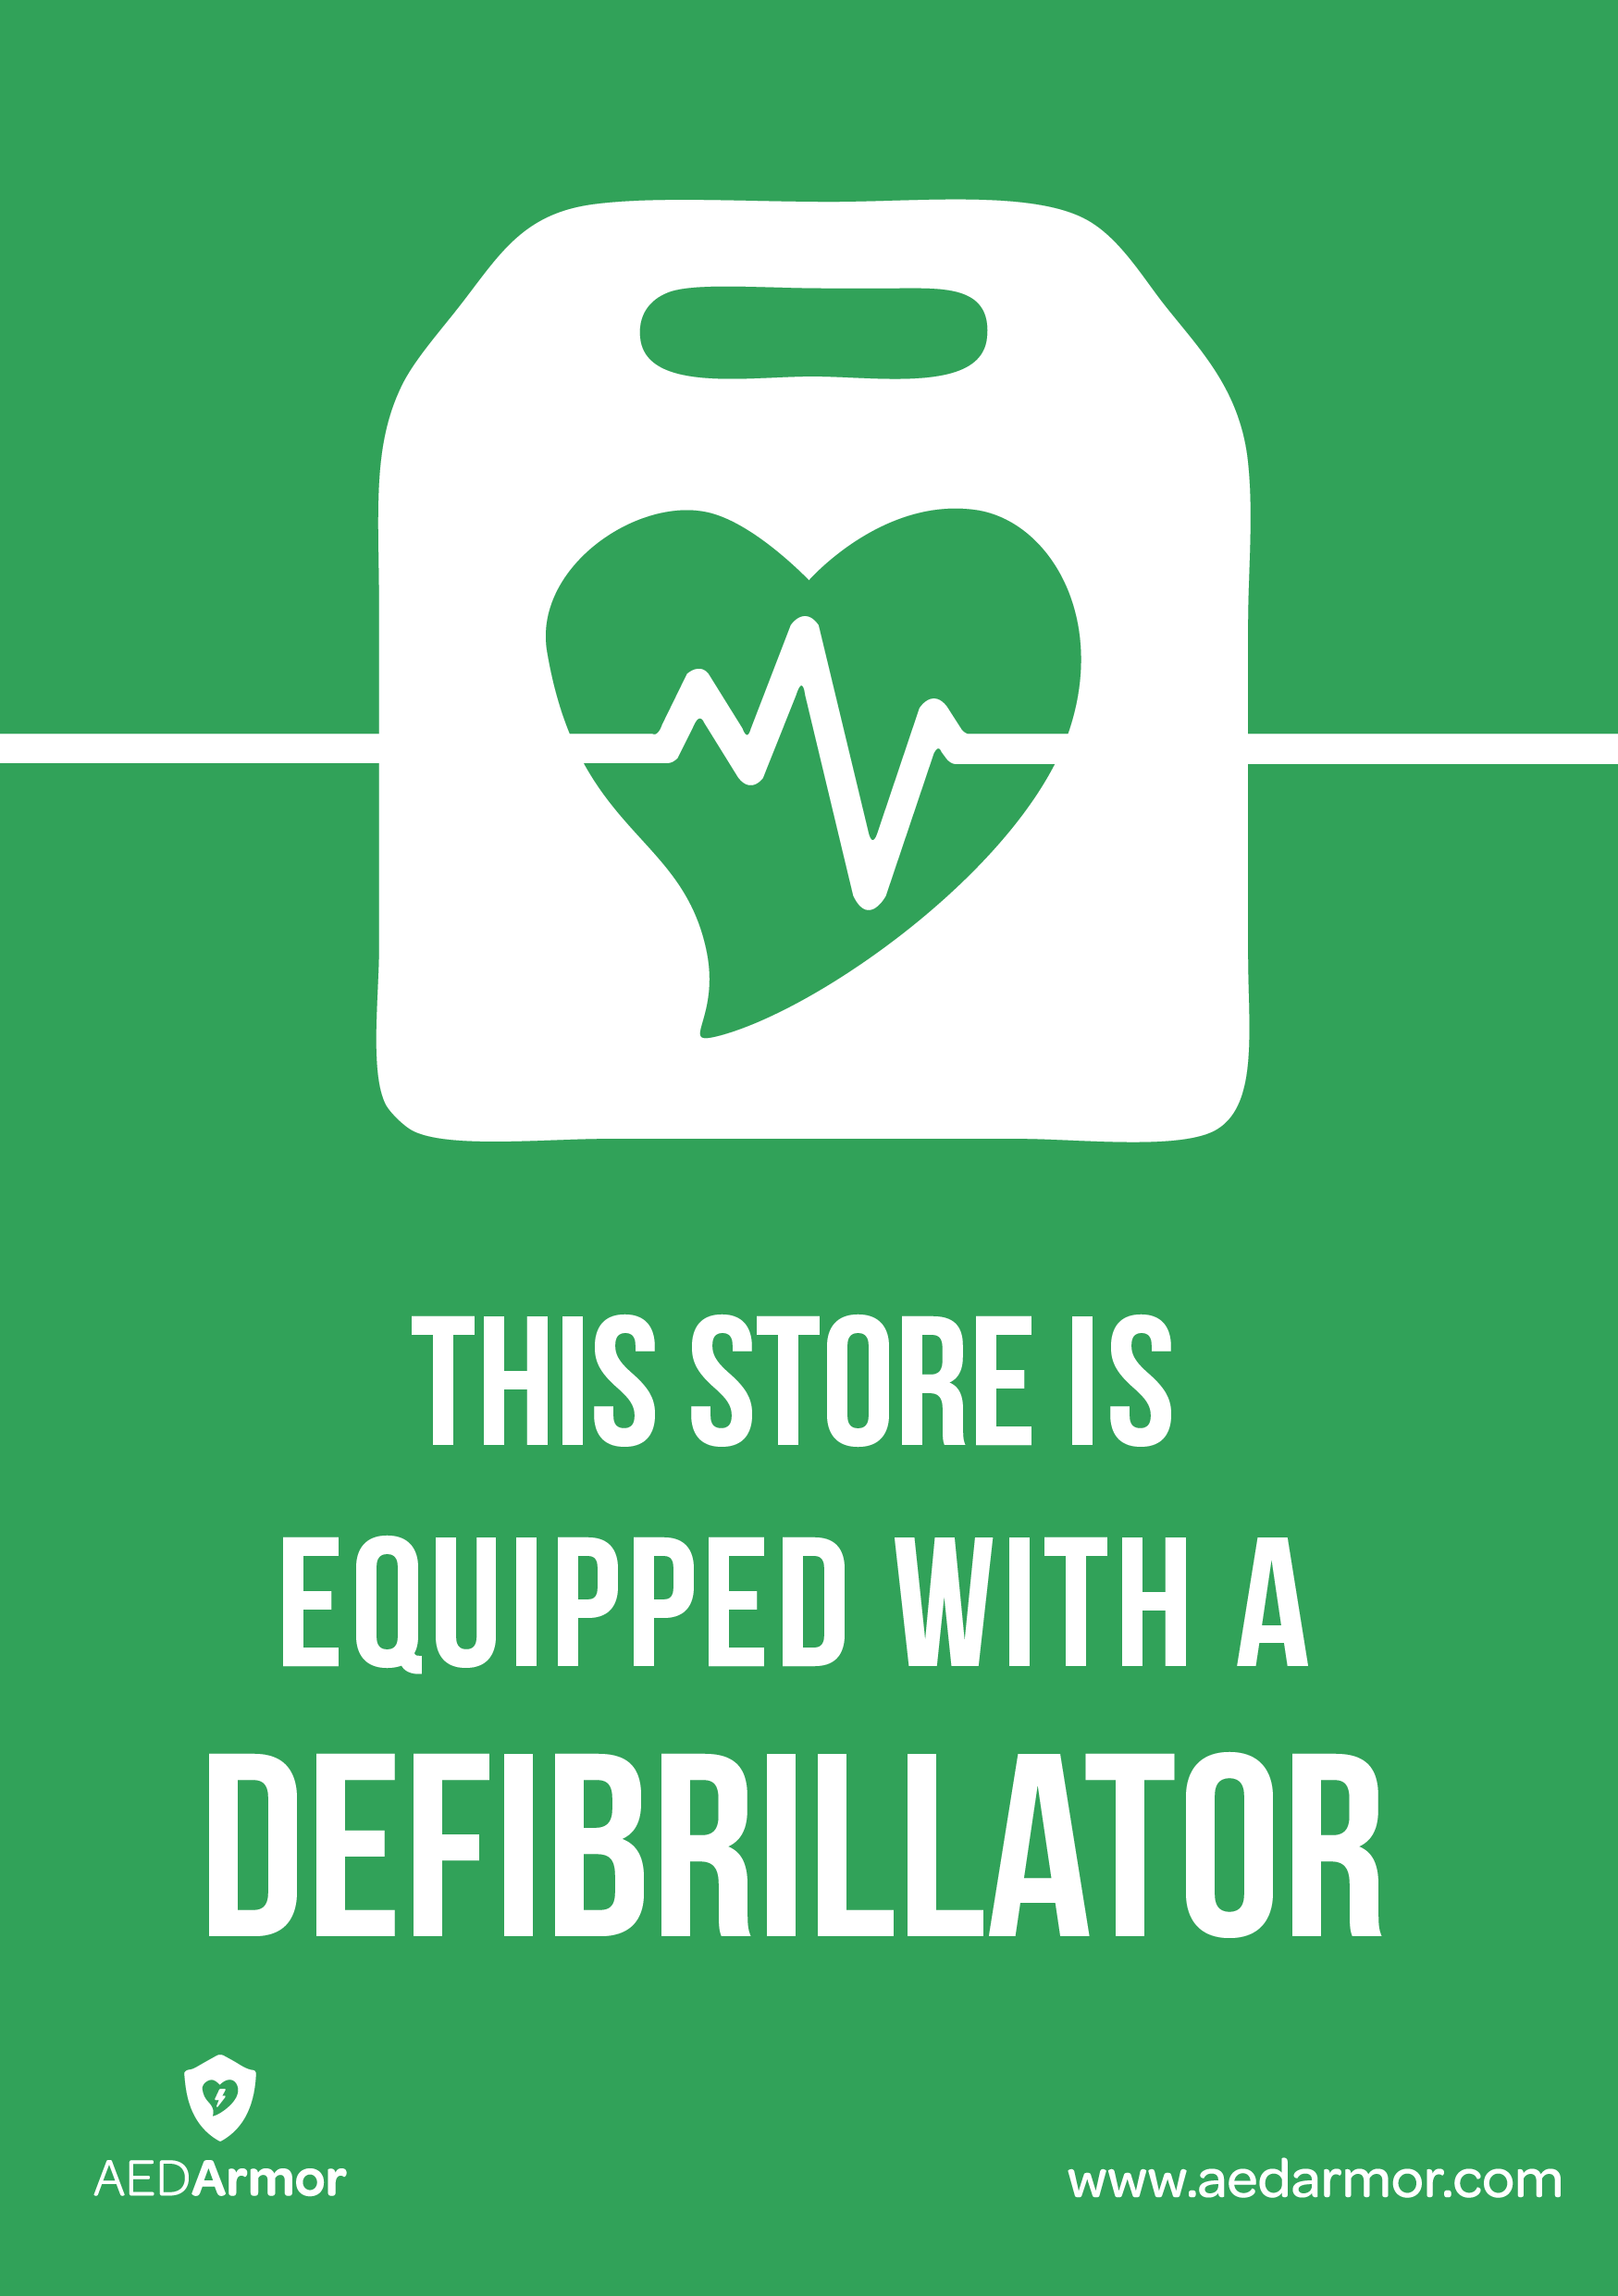 'This store is equipped with a defibrillator' A5 Sticker